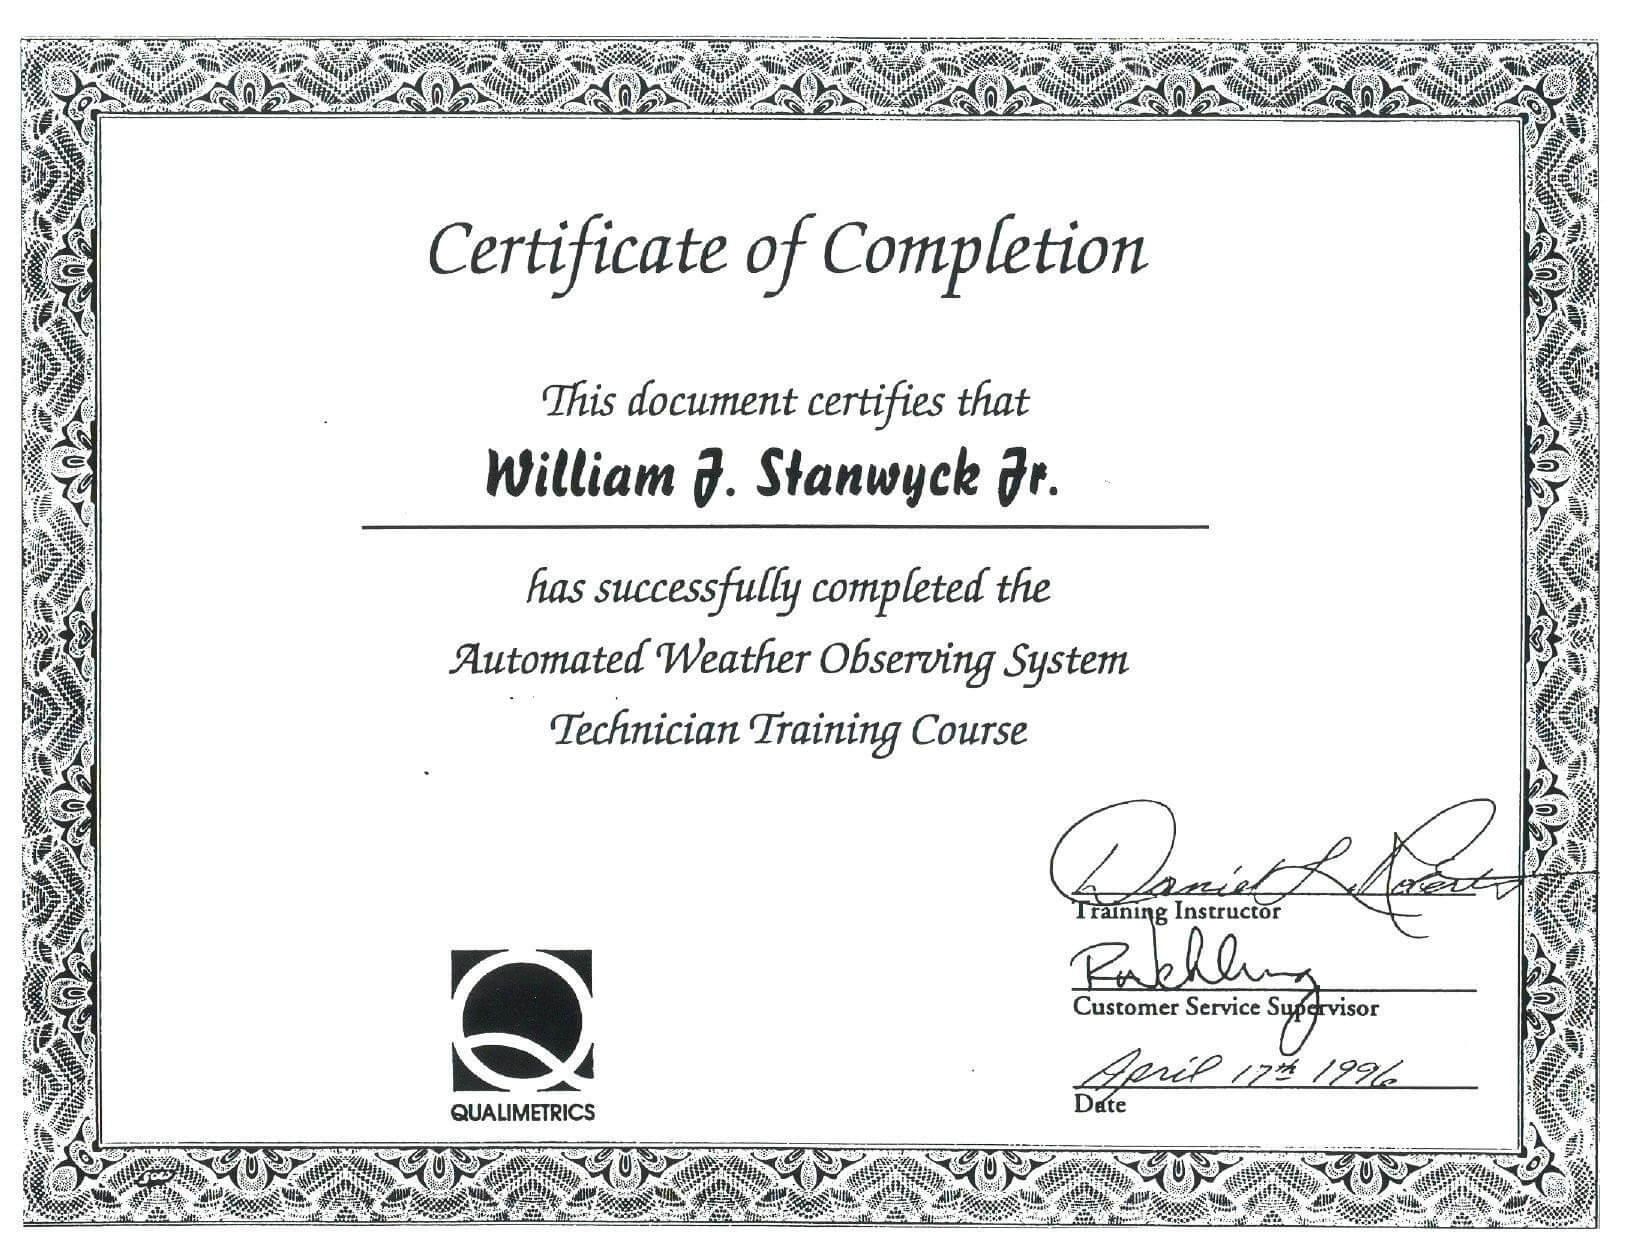 Course Completion Certificate Sample New Free Course Pletion Throughout Training Certificate Template Word Format